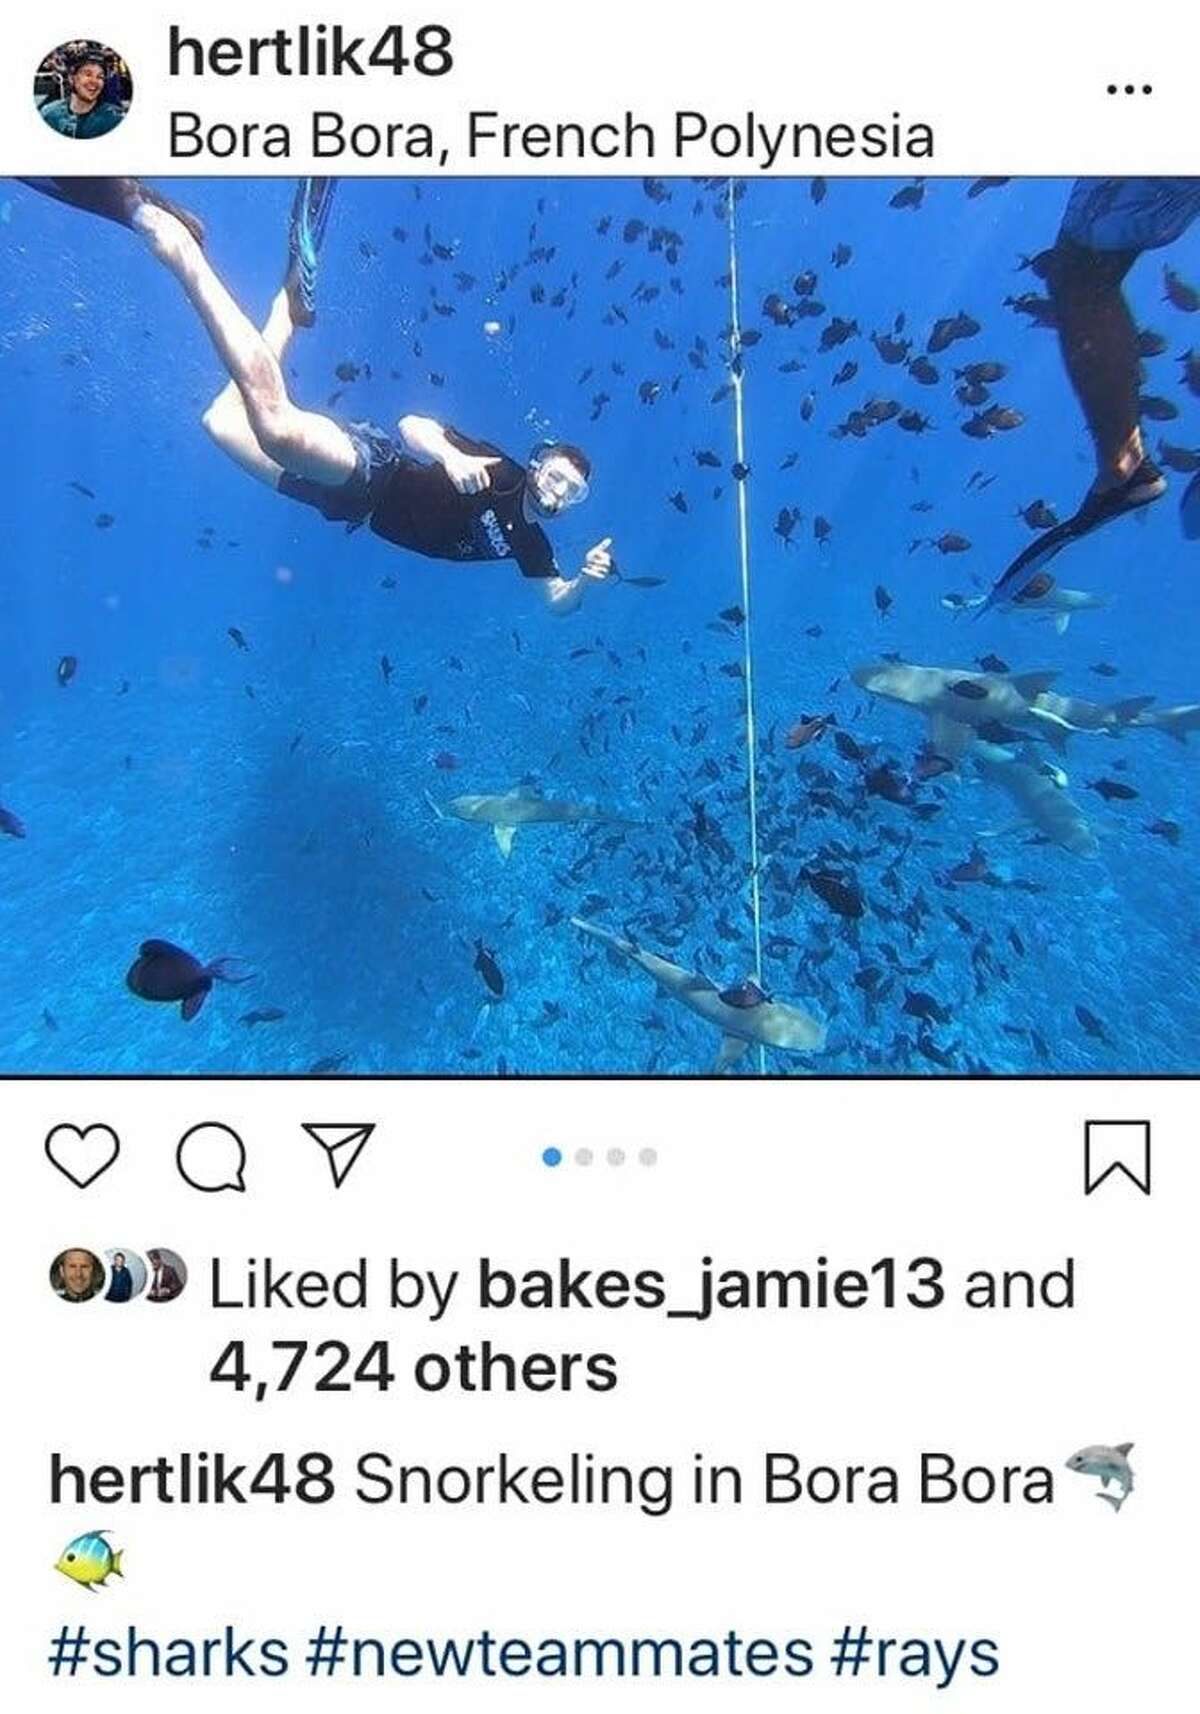 San Jose Sharks star Tomáš Hertl is seen in this photo swimming with sharks, with a San Jose Sharks t-shirt on.